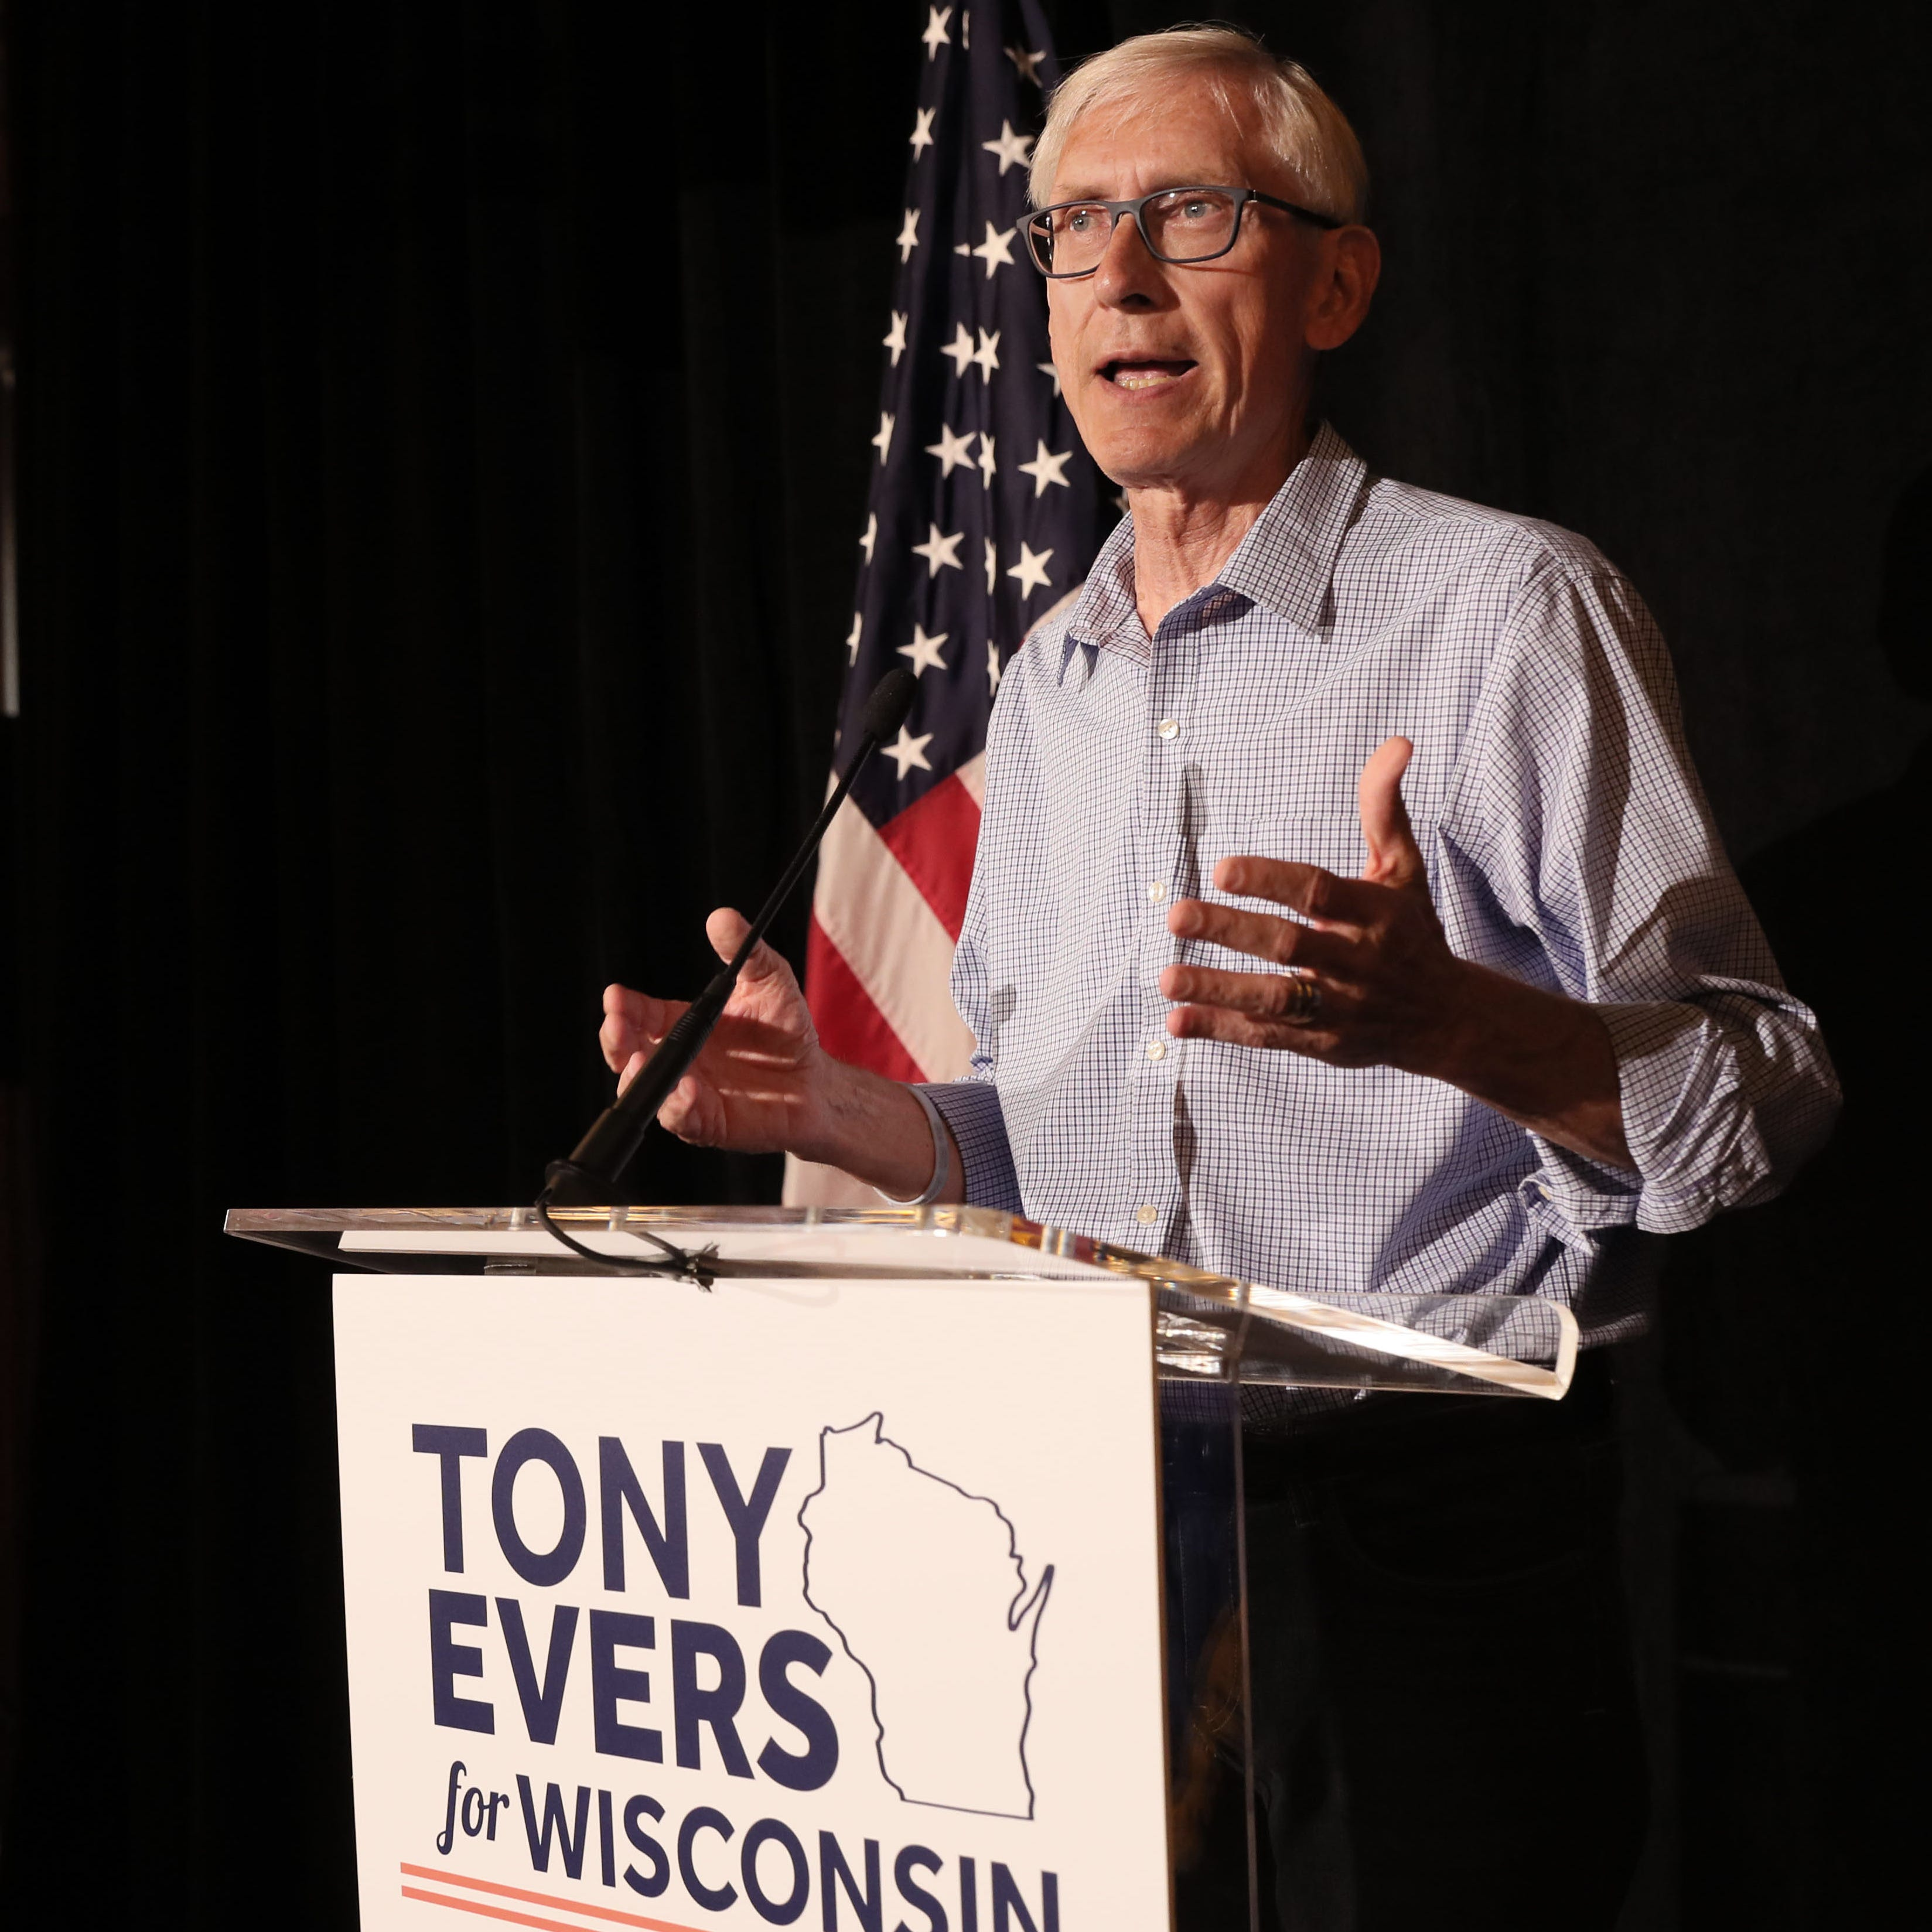 Bice: Republicans accuse Democratic candidate Tony Evers of plagiarizing three more times in past budgets